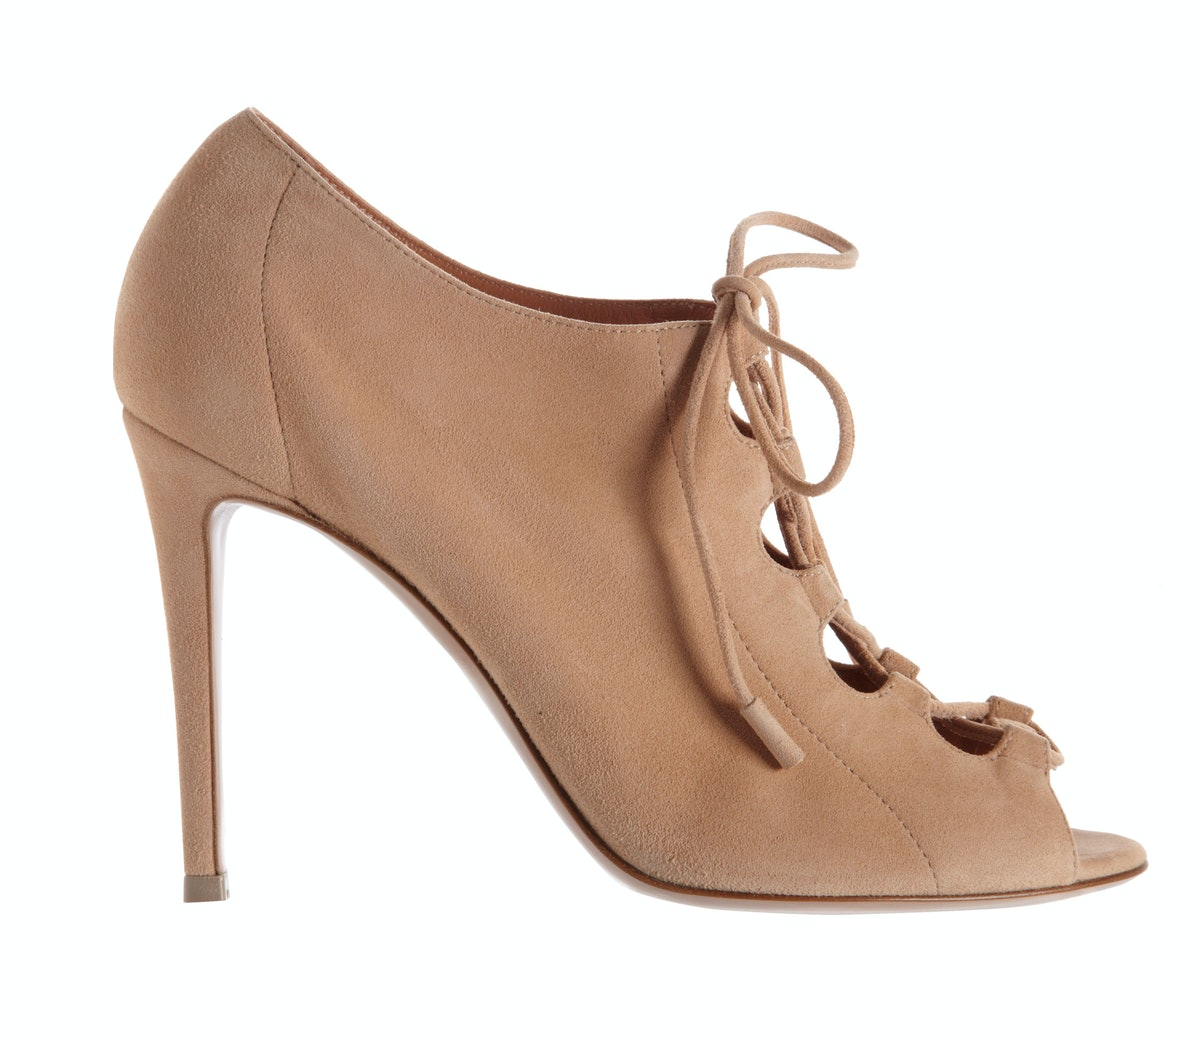 fass-open-toe-booties-06-gianvito-rossi